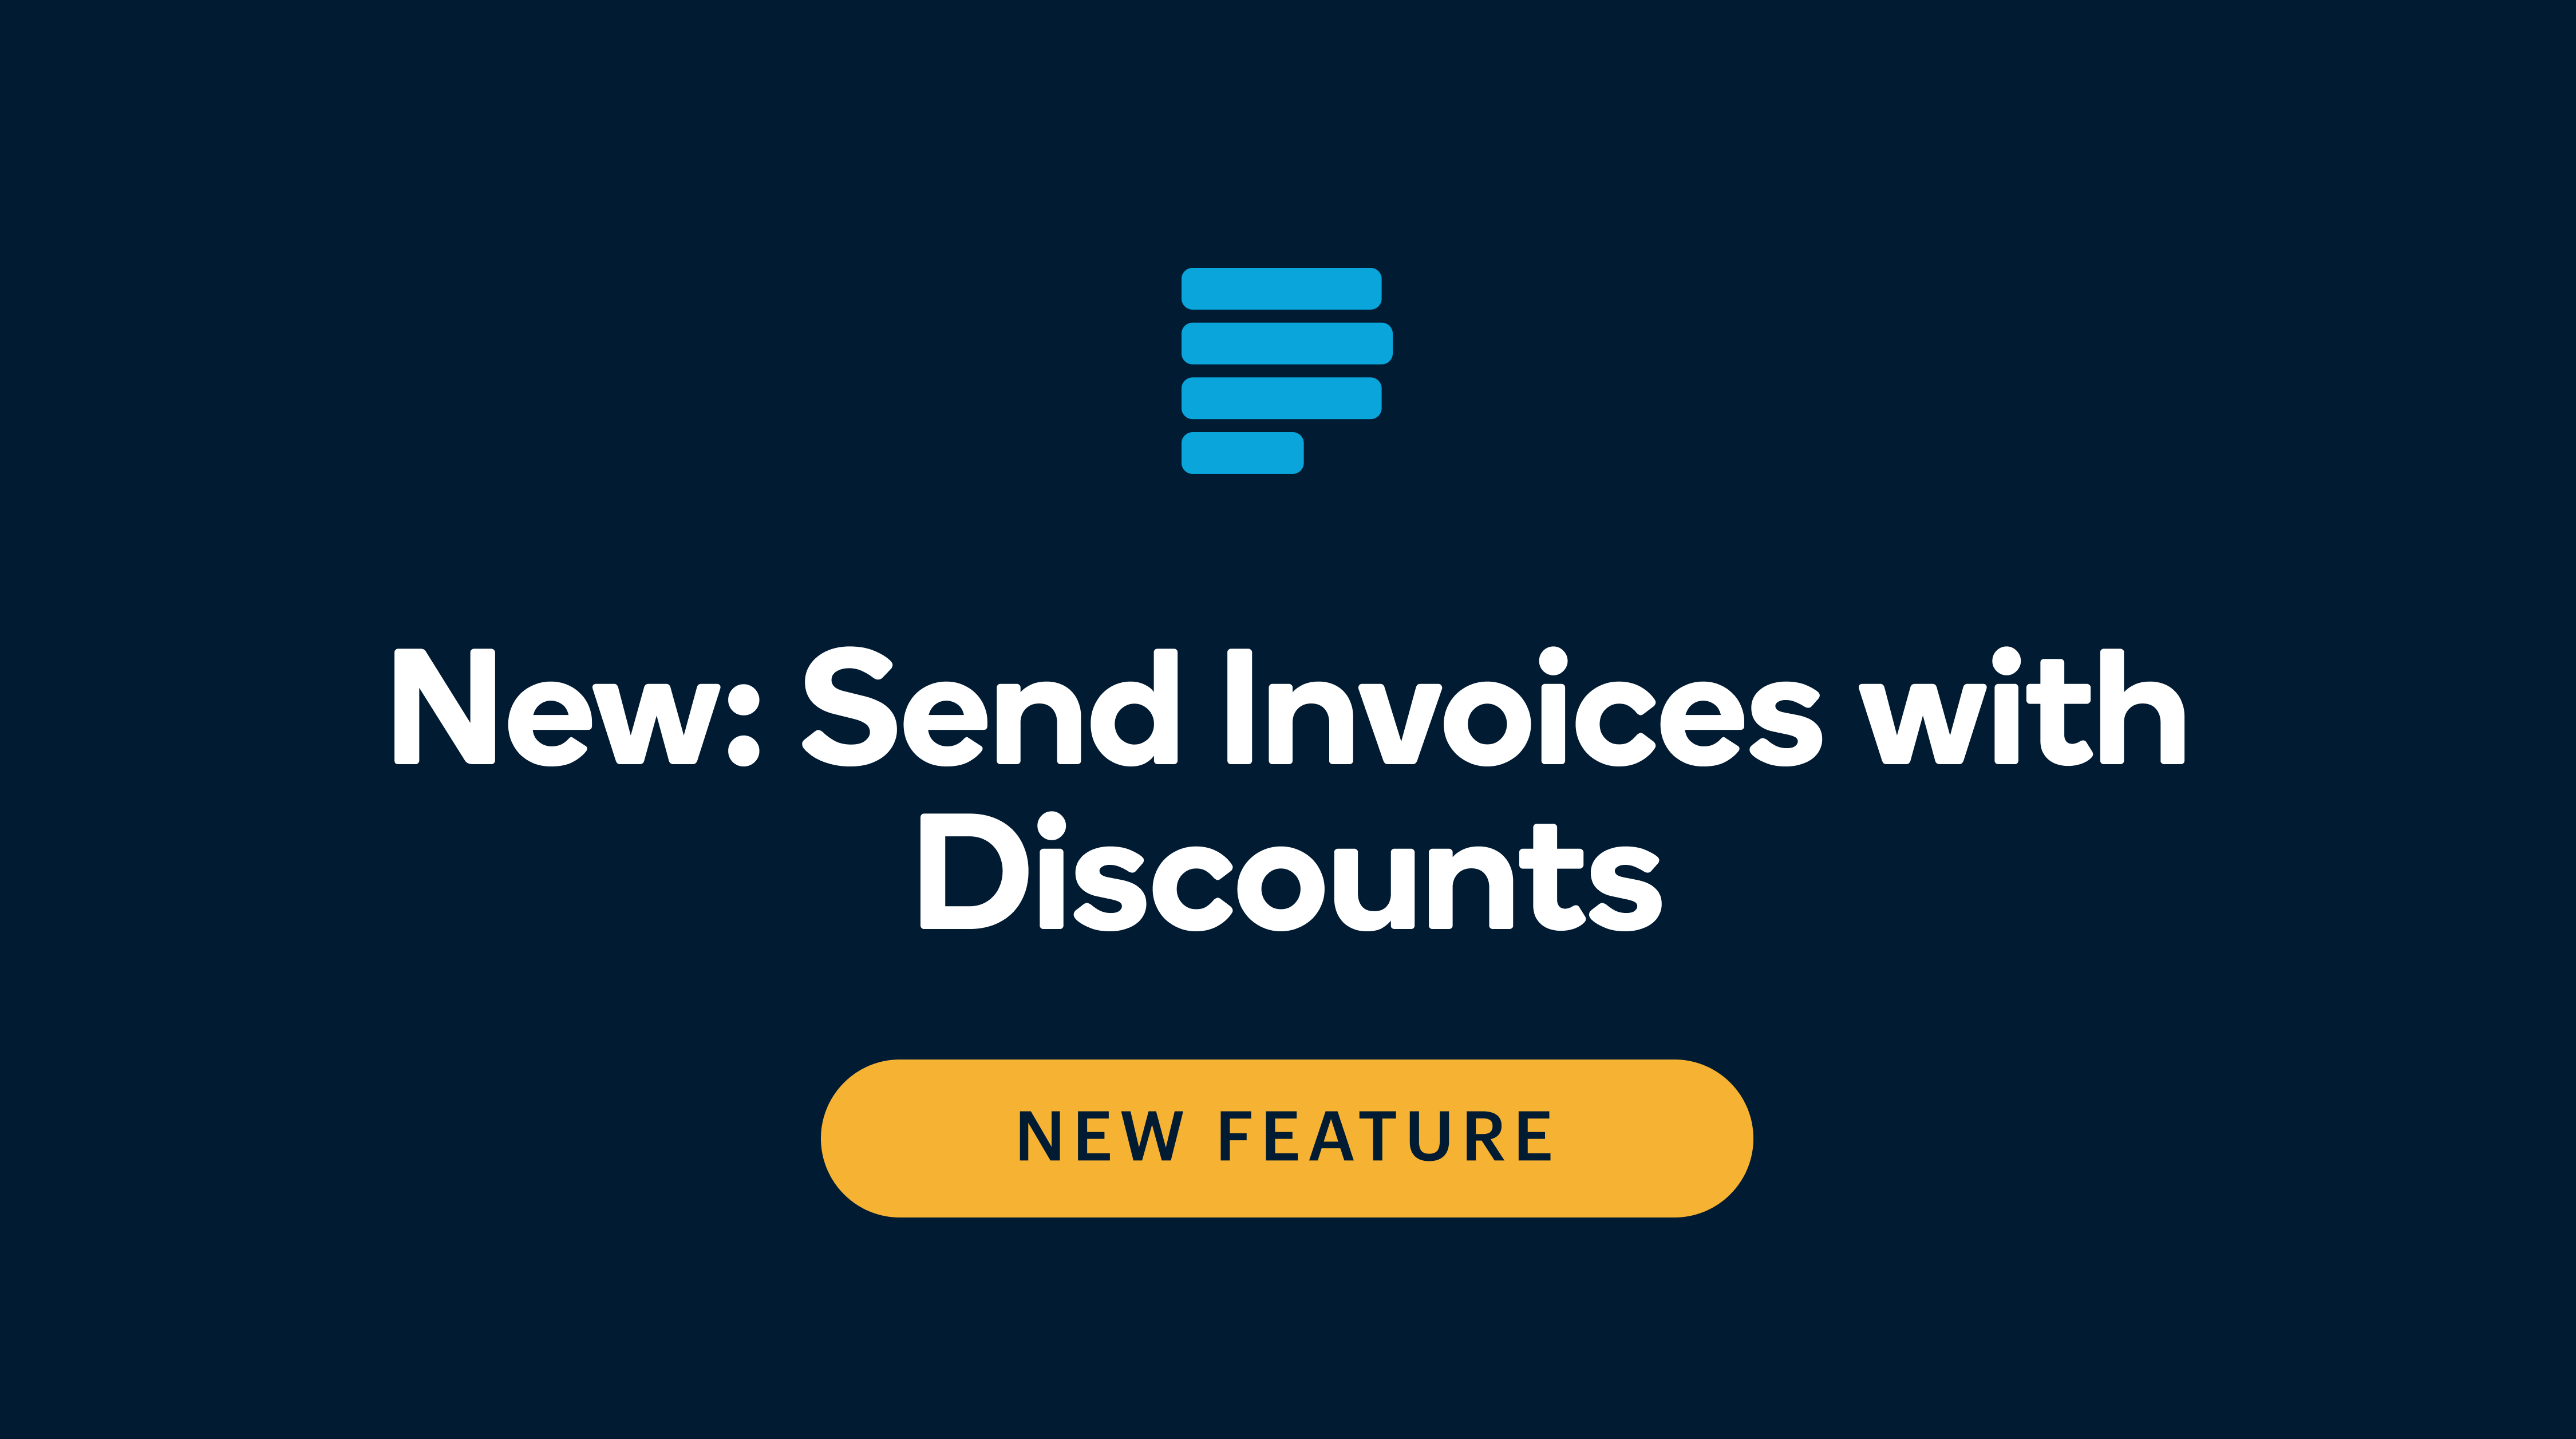 Include discounts in invoices